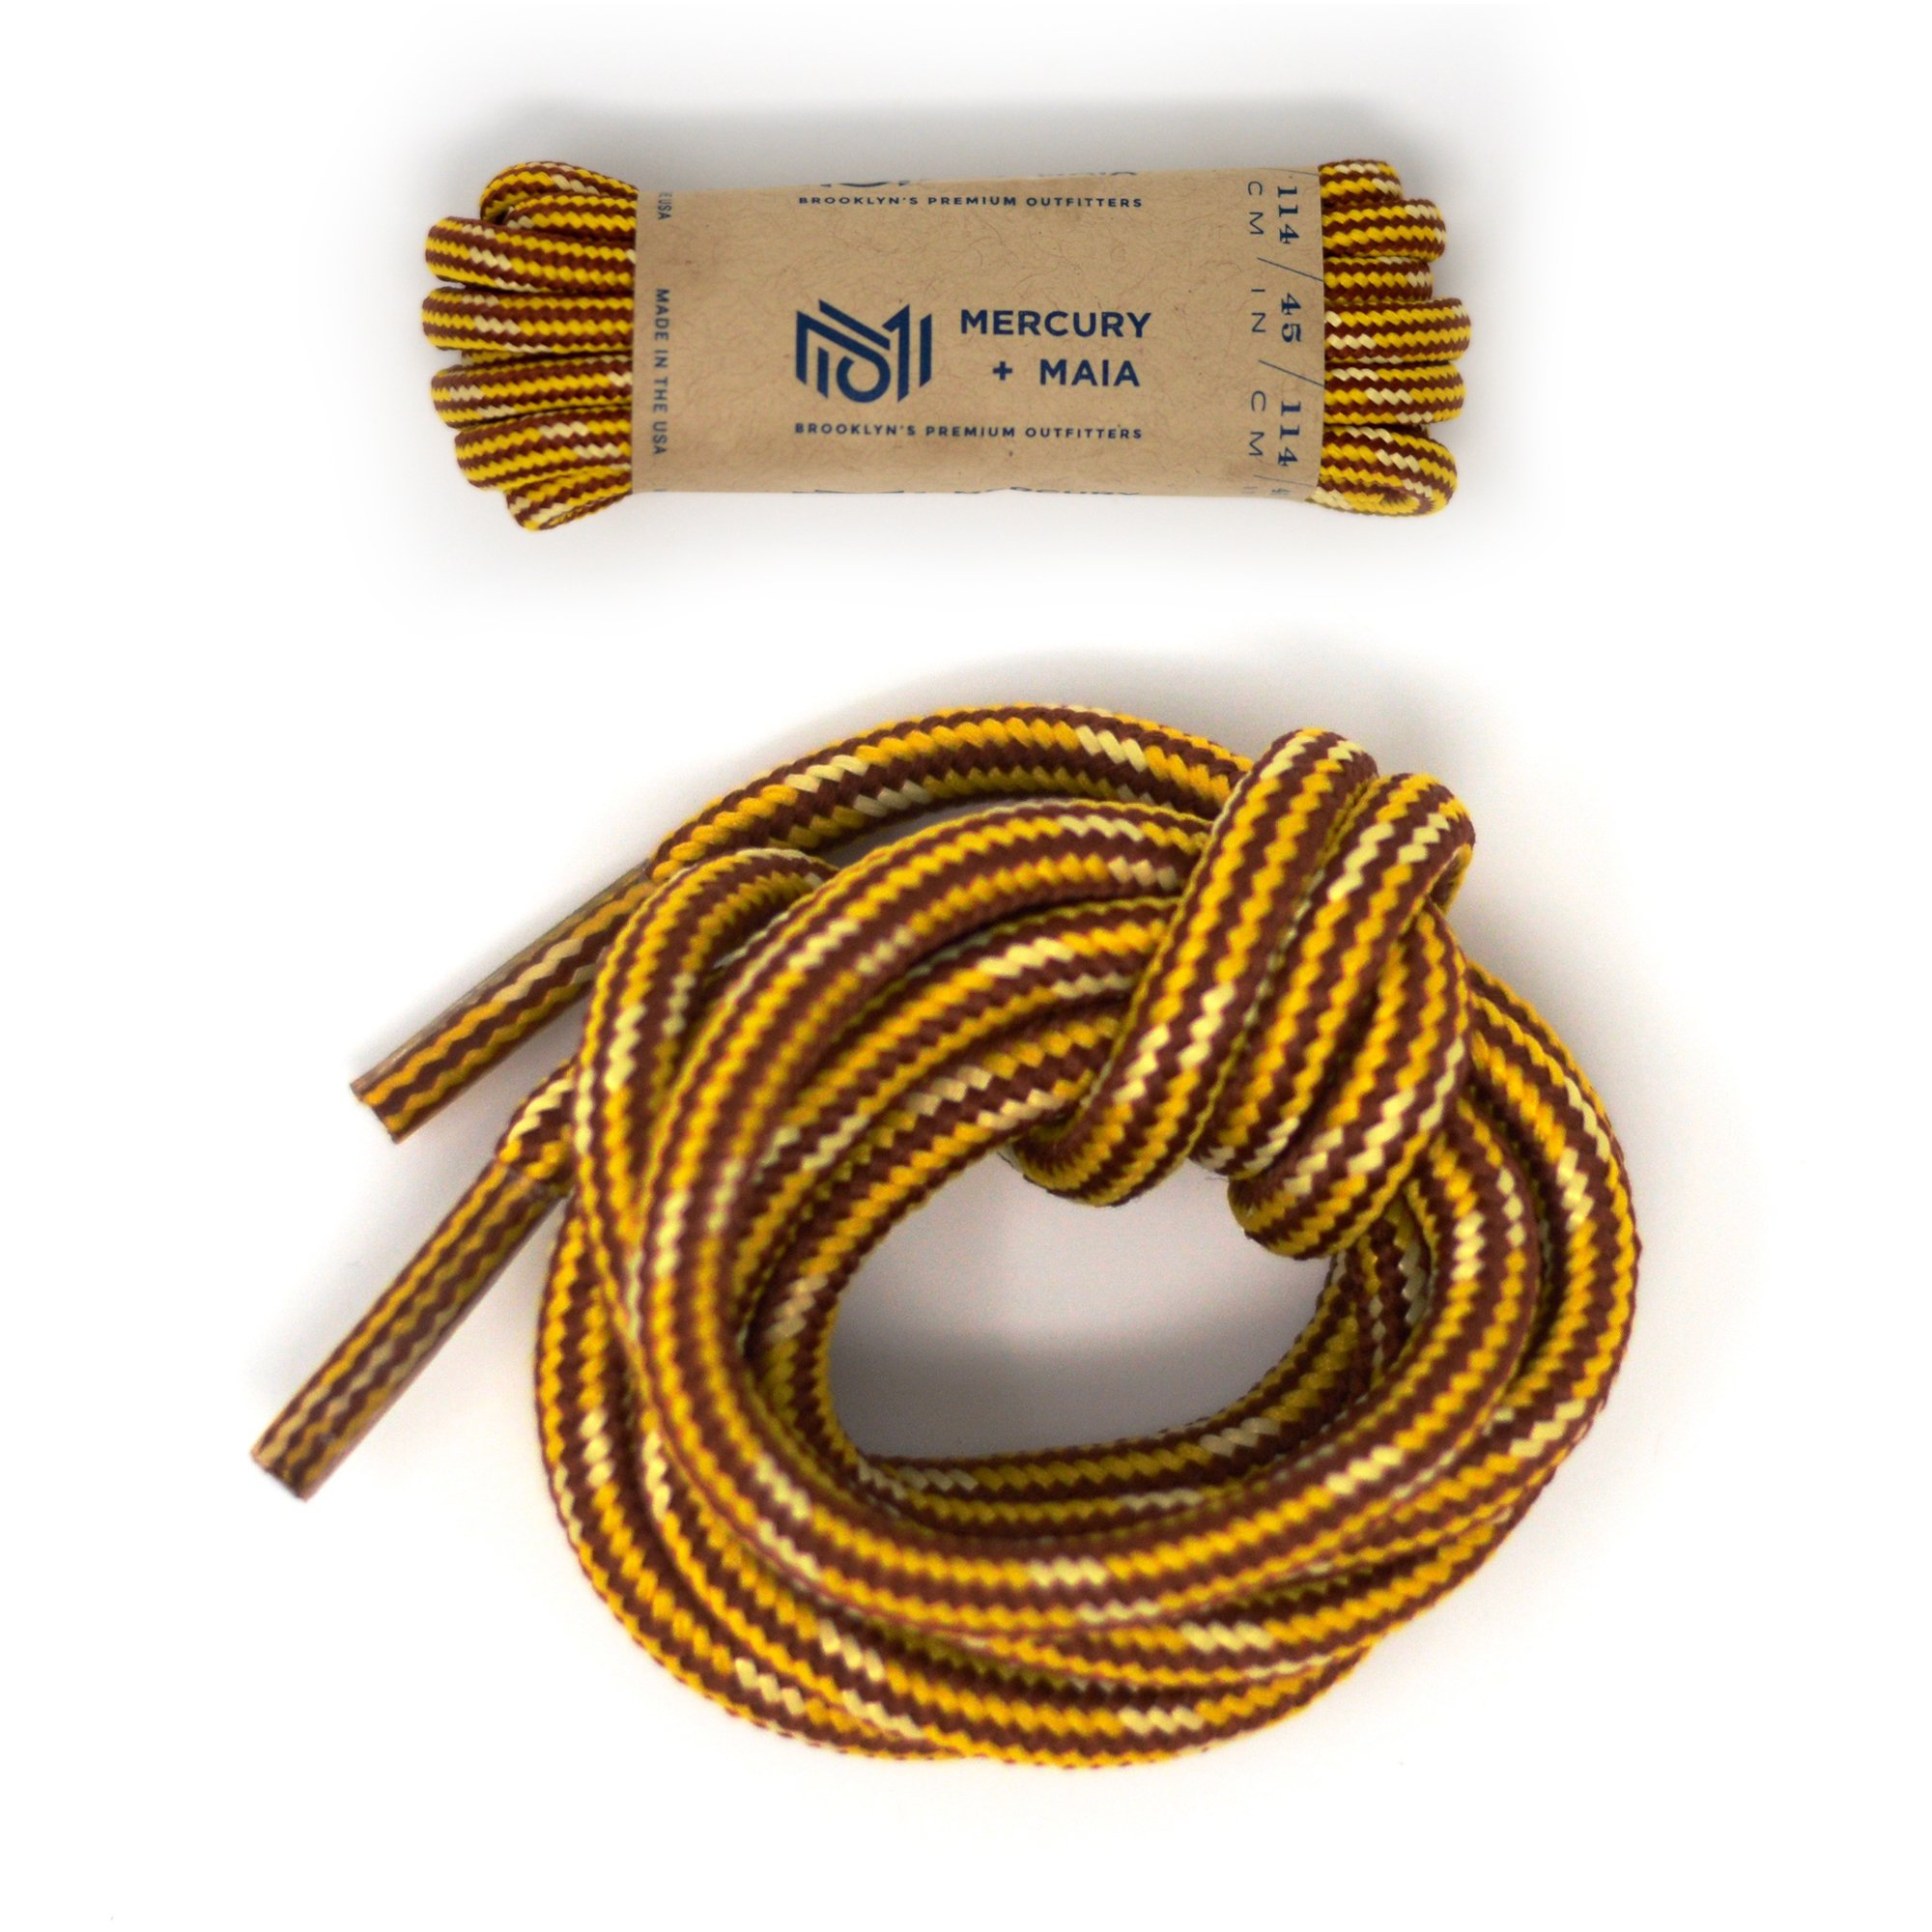 Mercury + Maia Honey Badger Boot Laces W/ Kevlar - USA Made Shoelaces (Gold and Natural) (54 inches 2 Pair Pack)